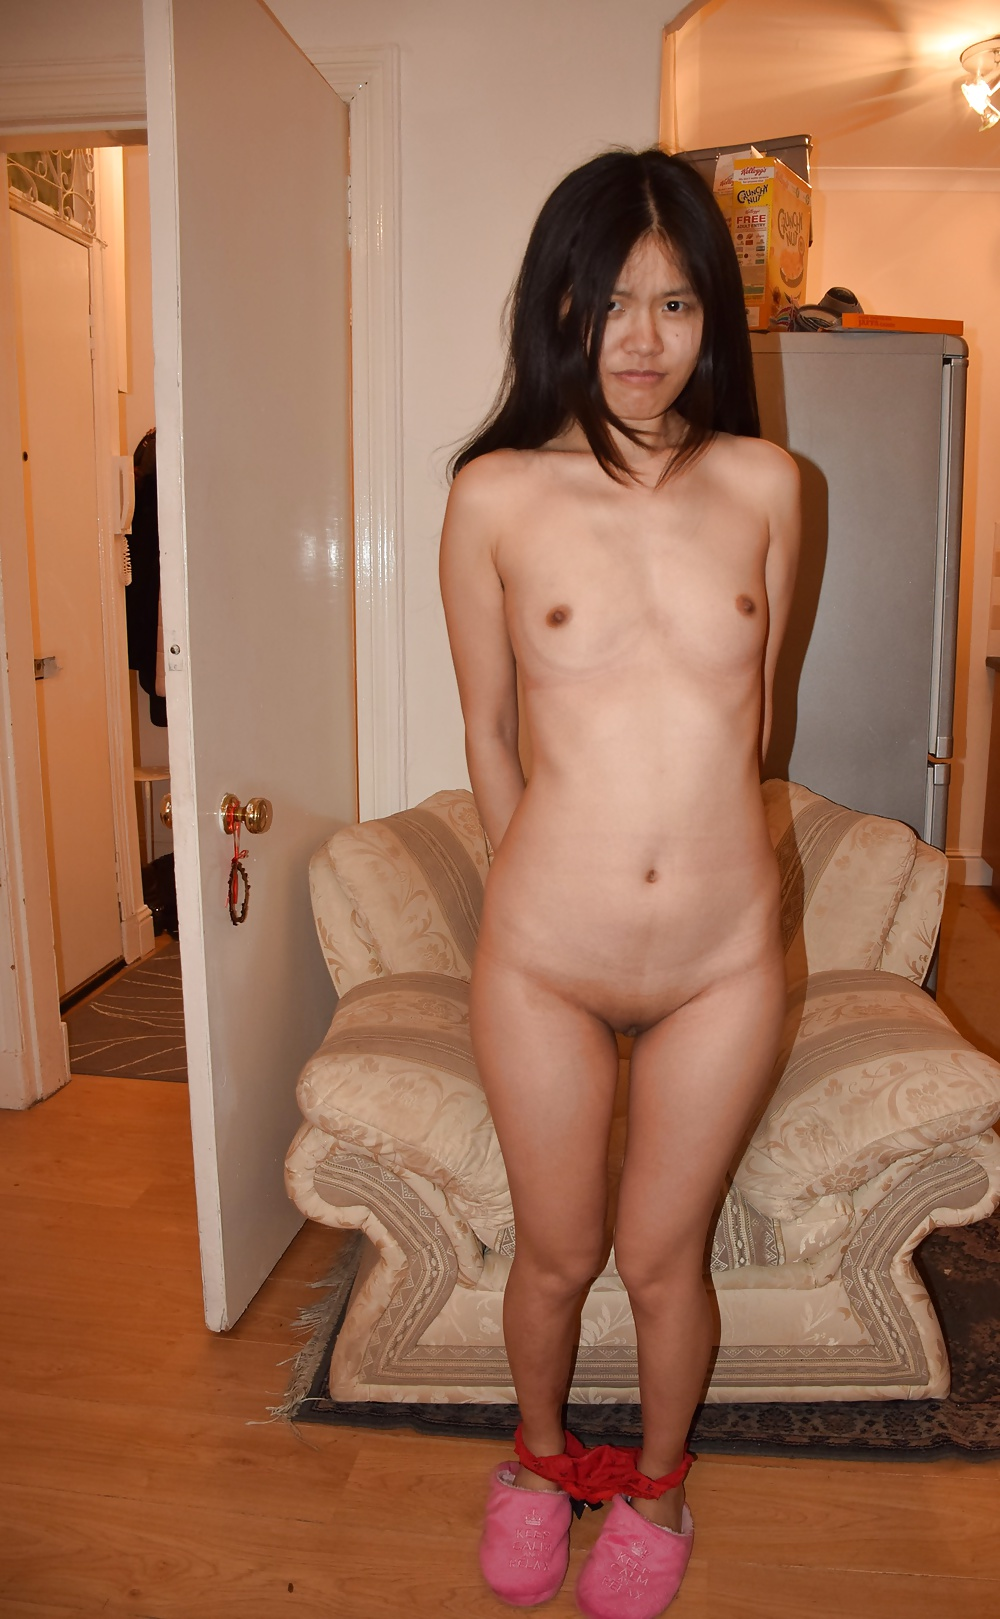 pussies-sex-nude-asian-small-wives-girls